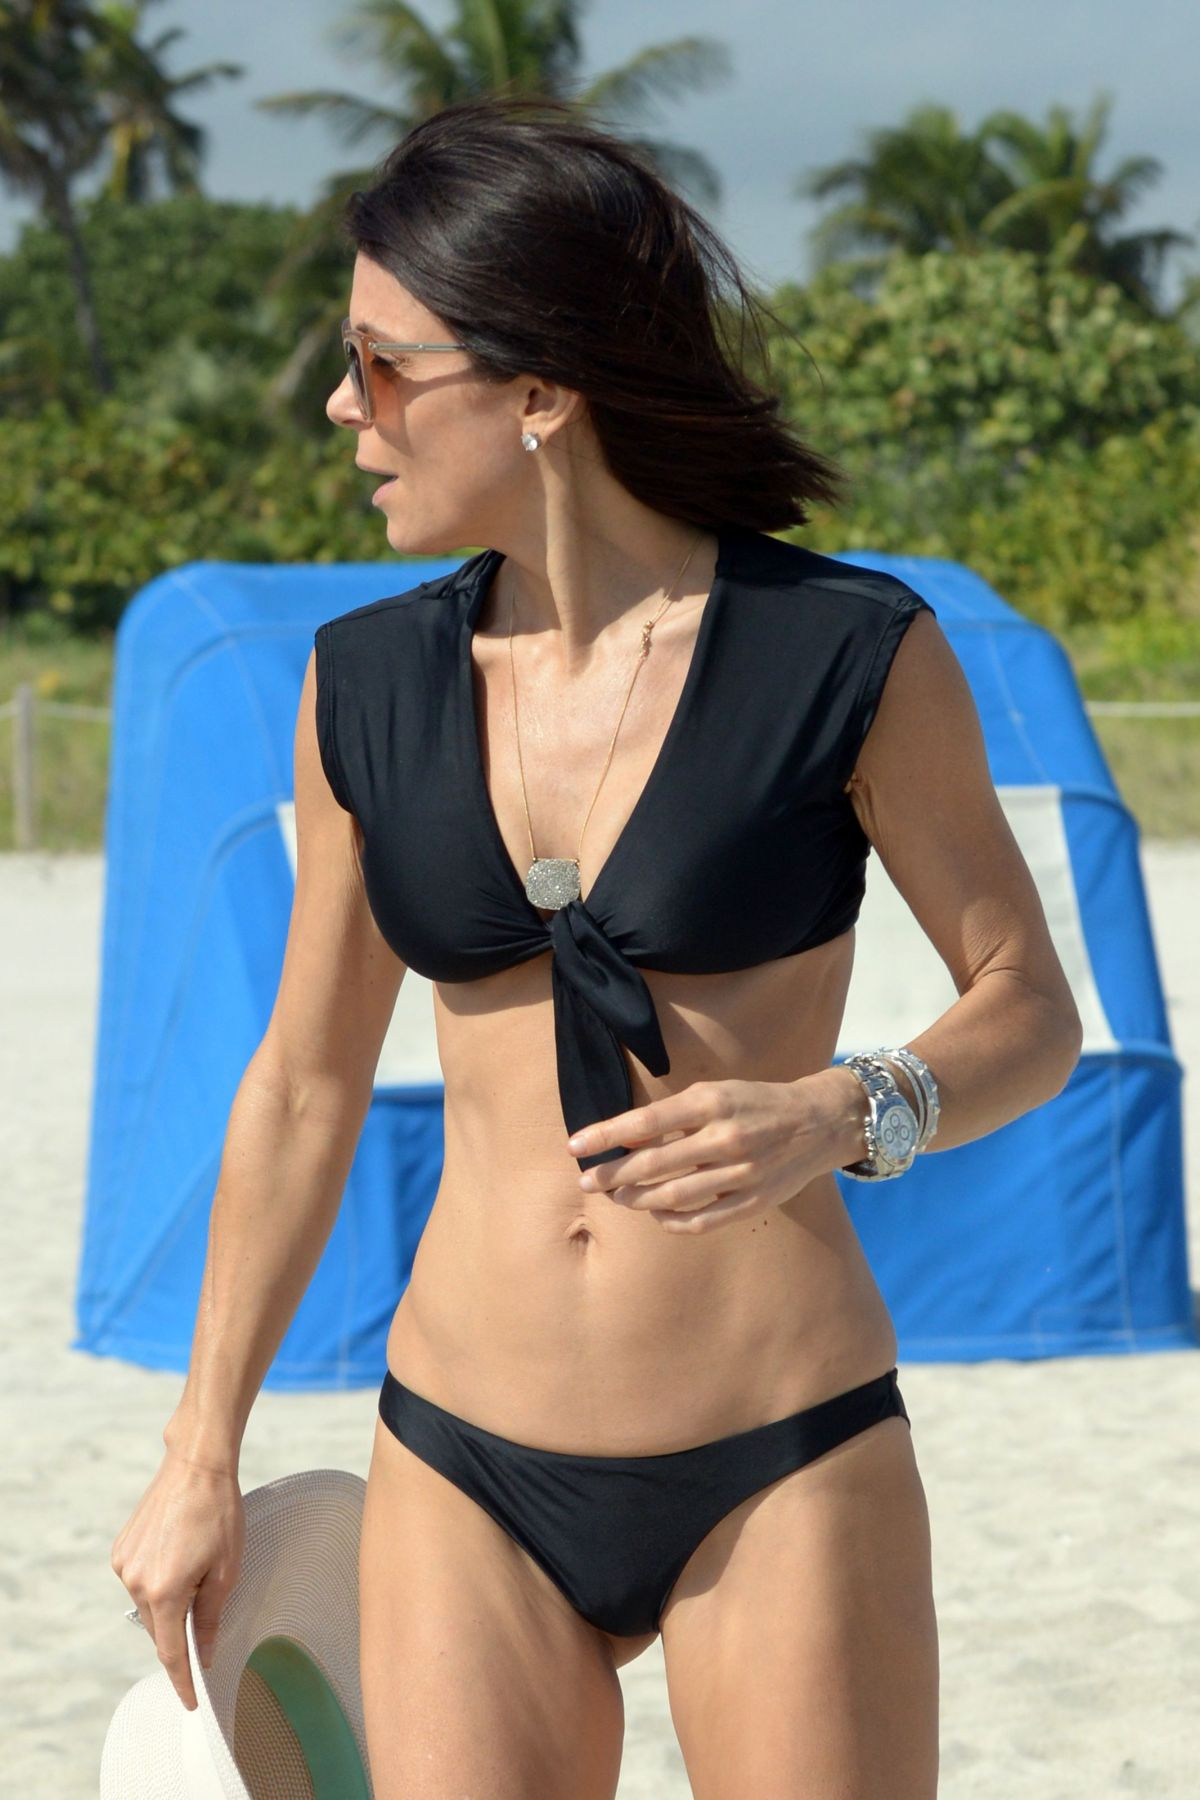 BETHENNY FRANKEL in Bikini on the Beach in Miami 12/05/2016   bethenny-frankel-in-bikini-on-the-beach-in-miami-12-05-2016_32